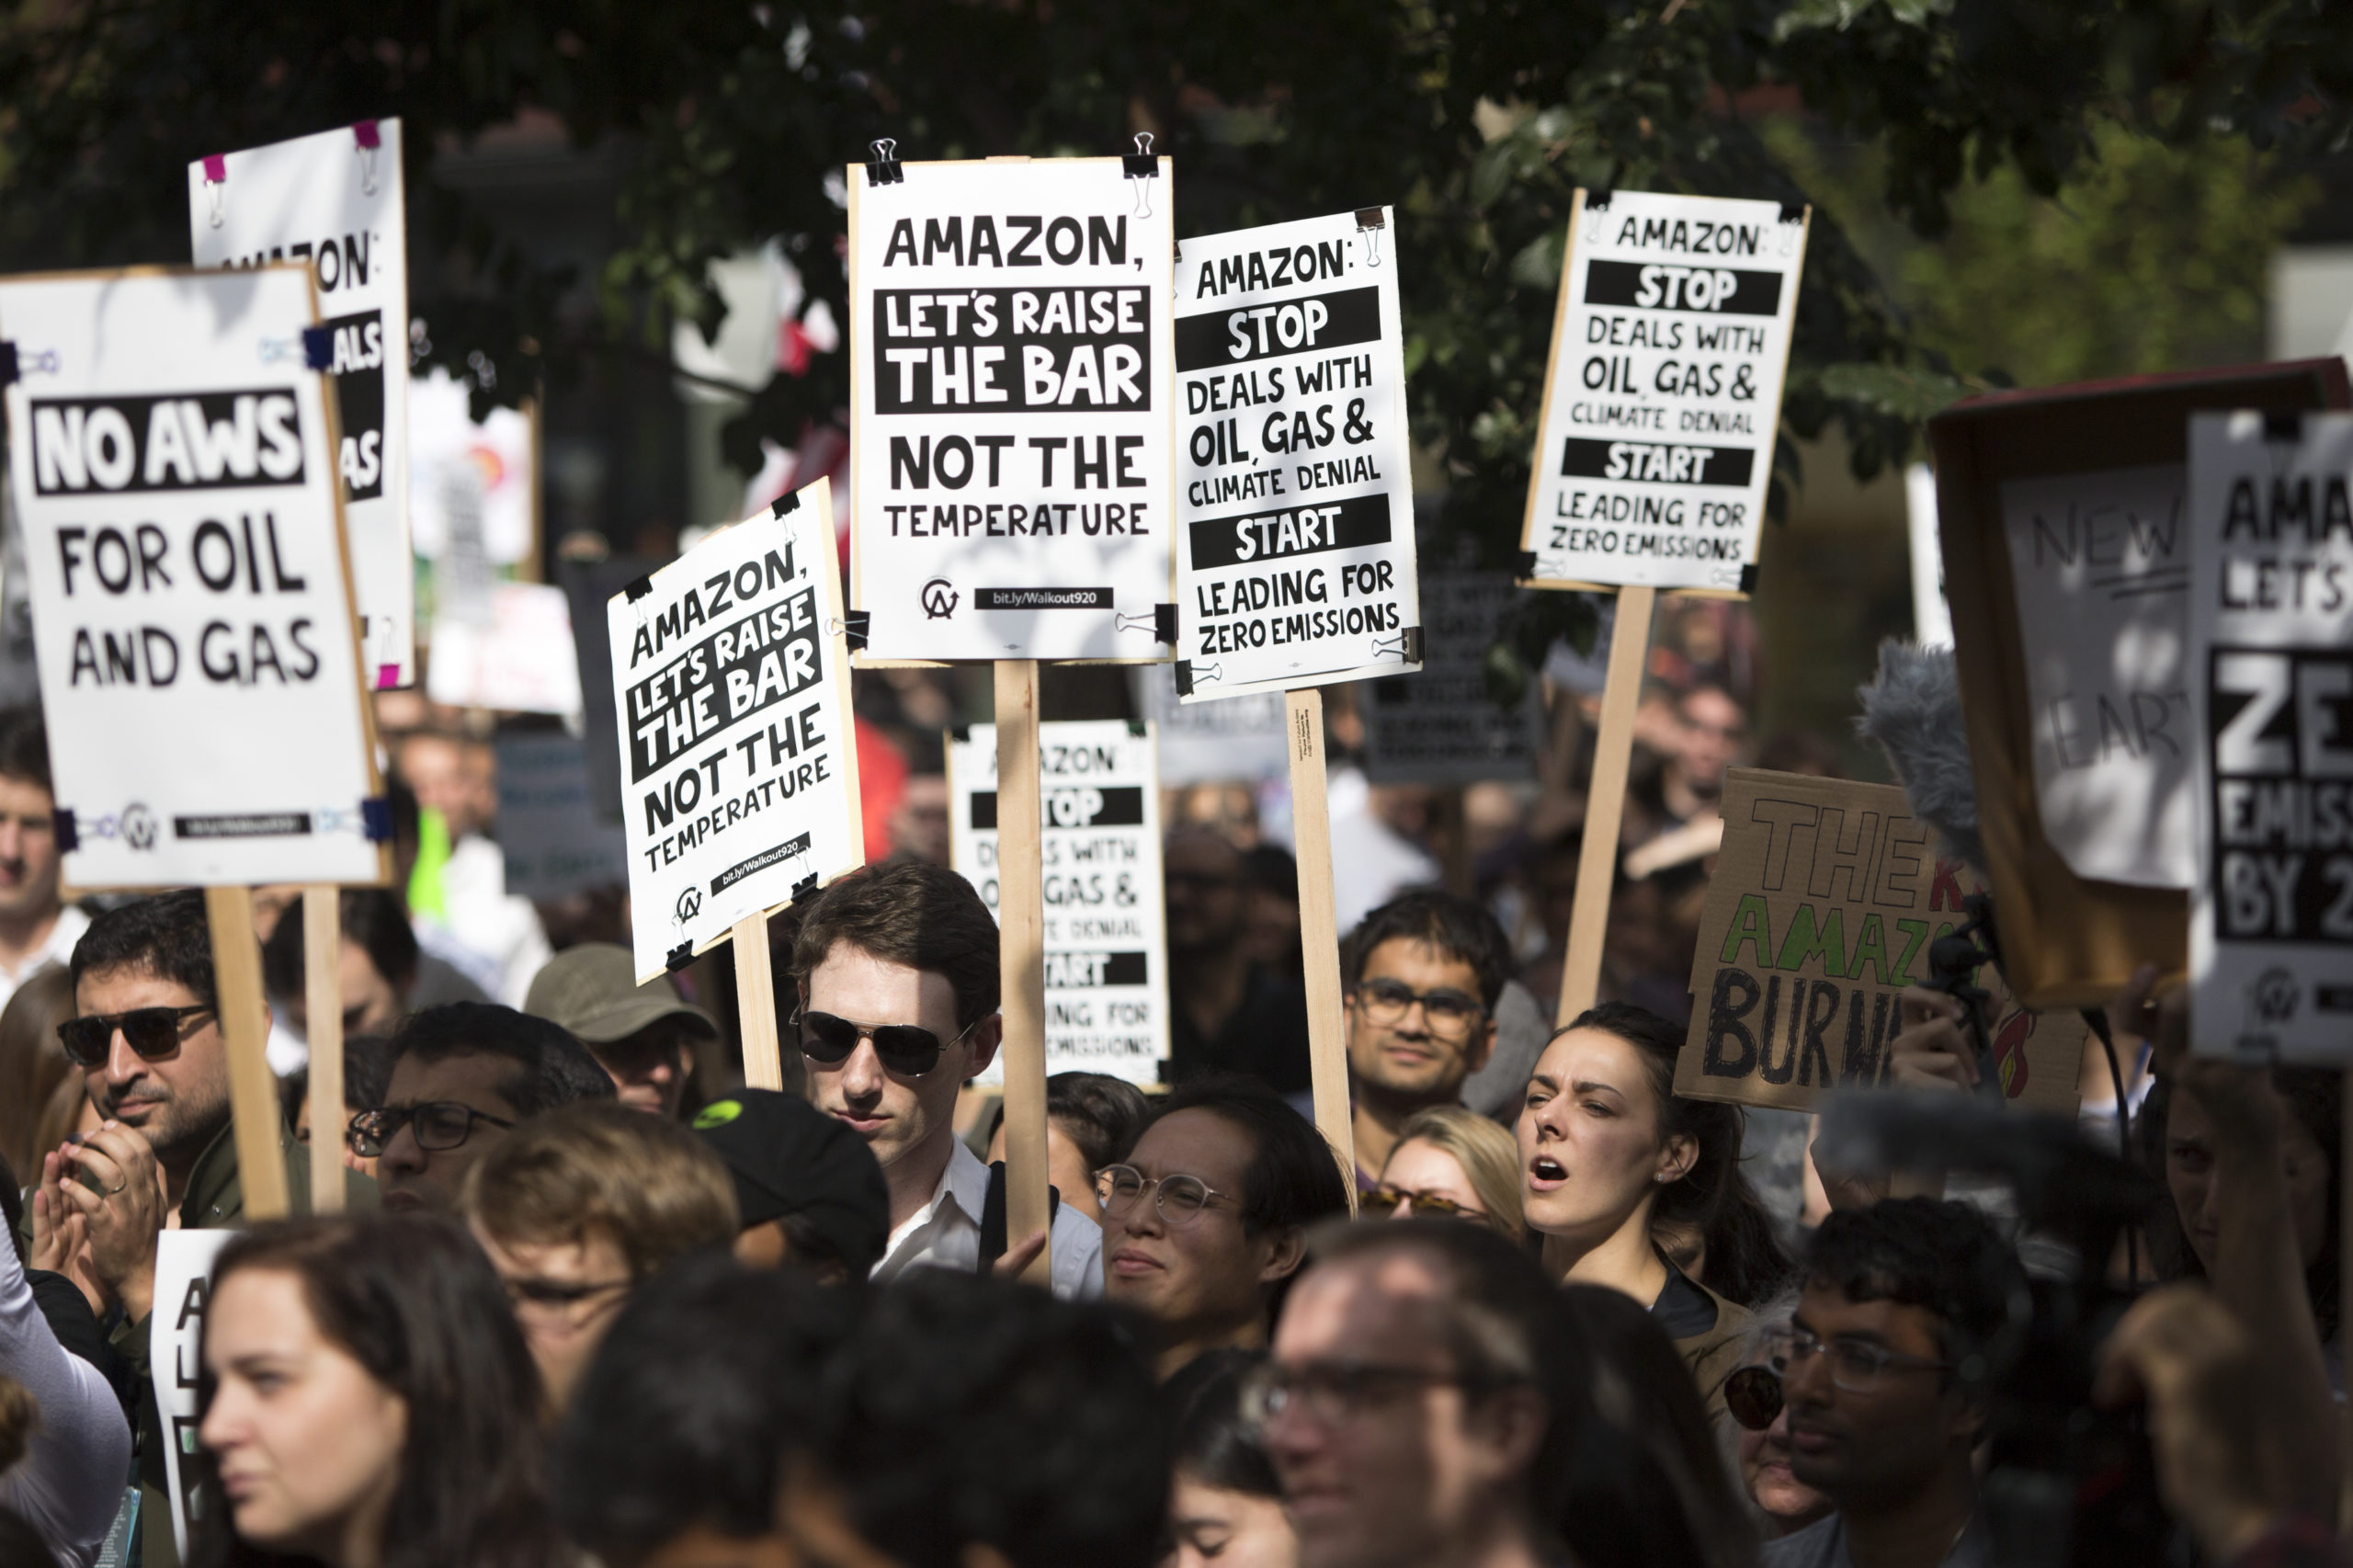 Amazon Employees for Climate Justice lead a walk out and rally at the company's headquarters in Seattle, Washington on Sept. 20, 2019. (Jason Redmond/AFP via Getty Images)